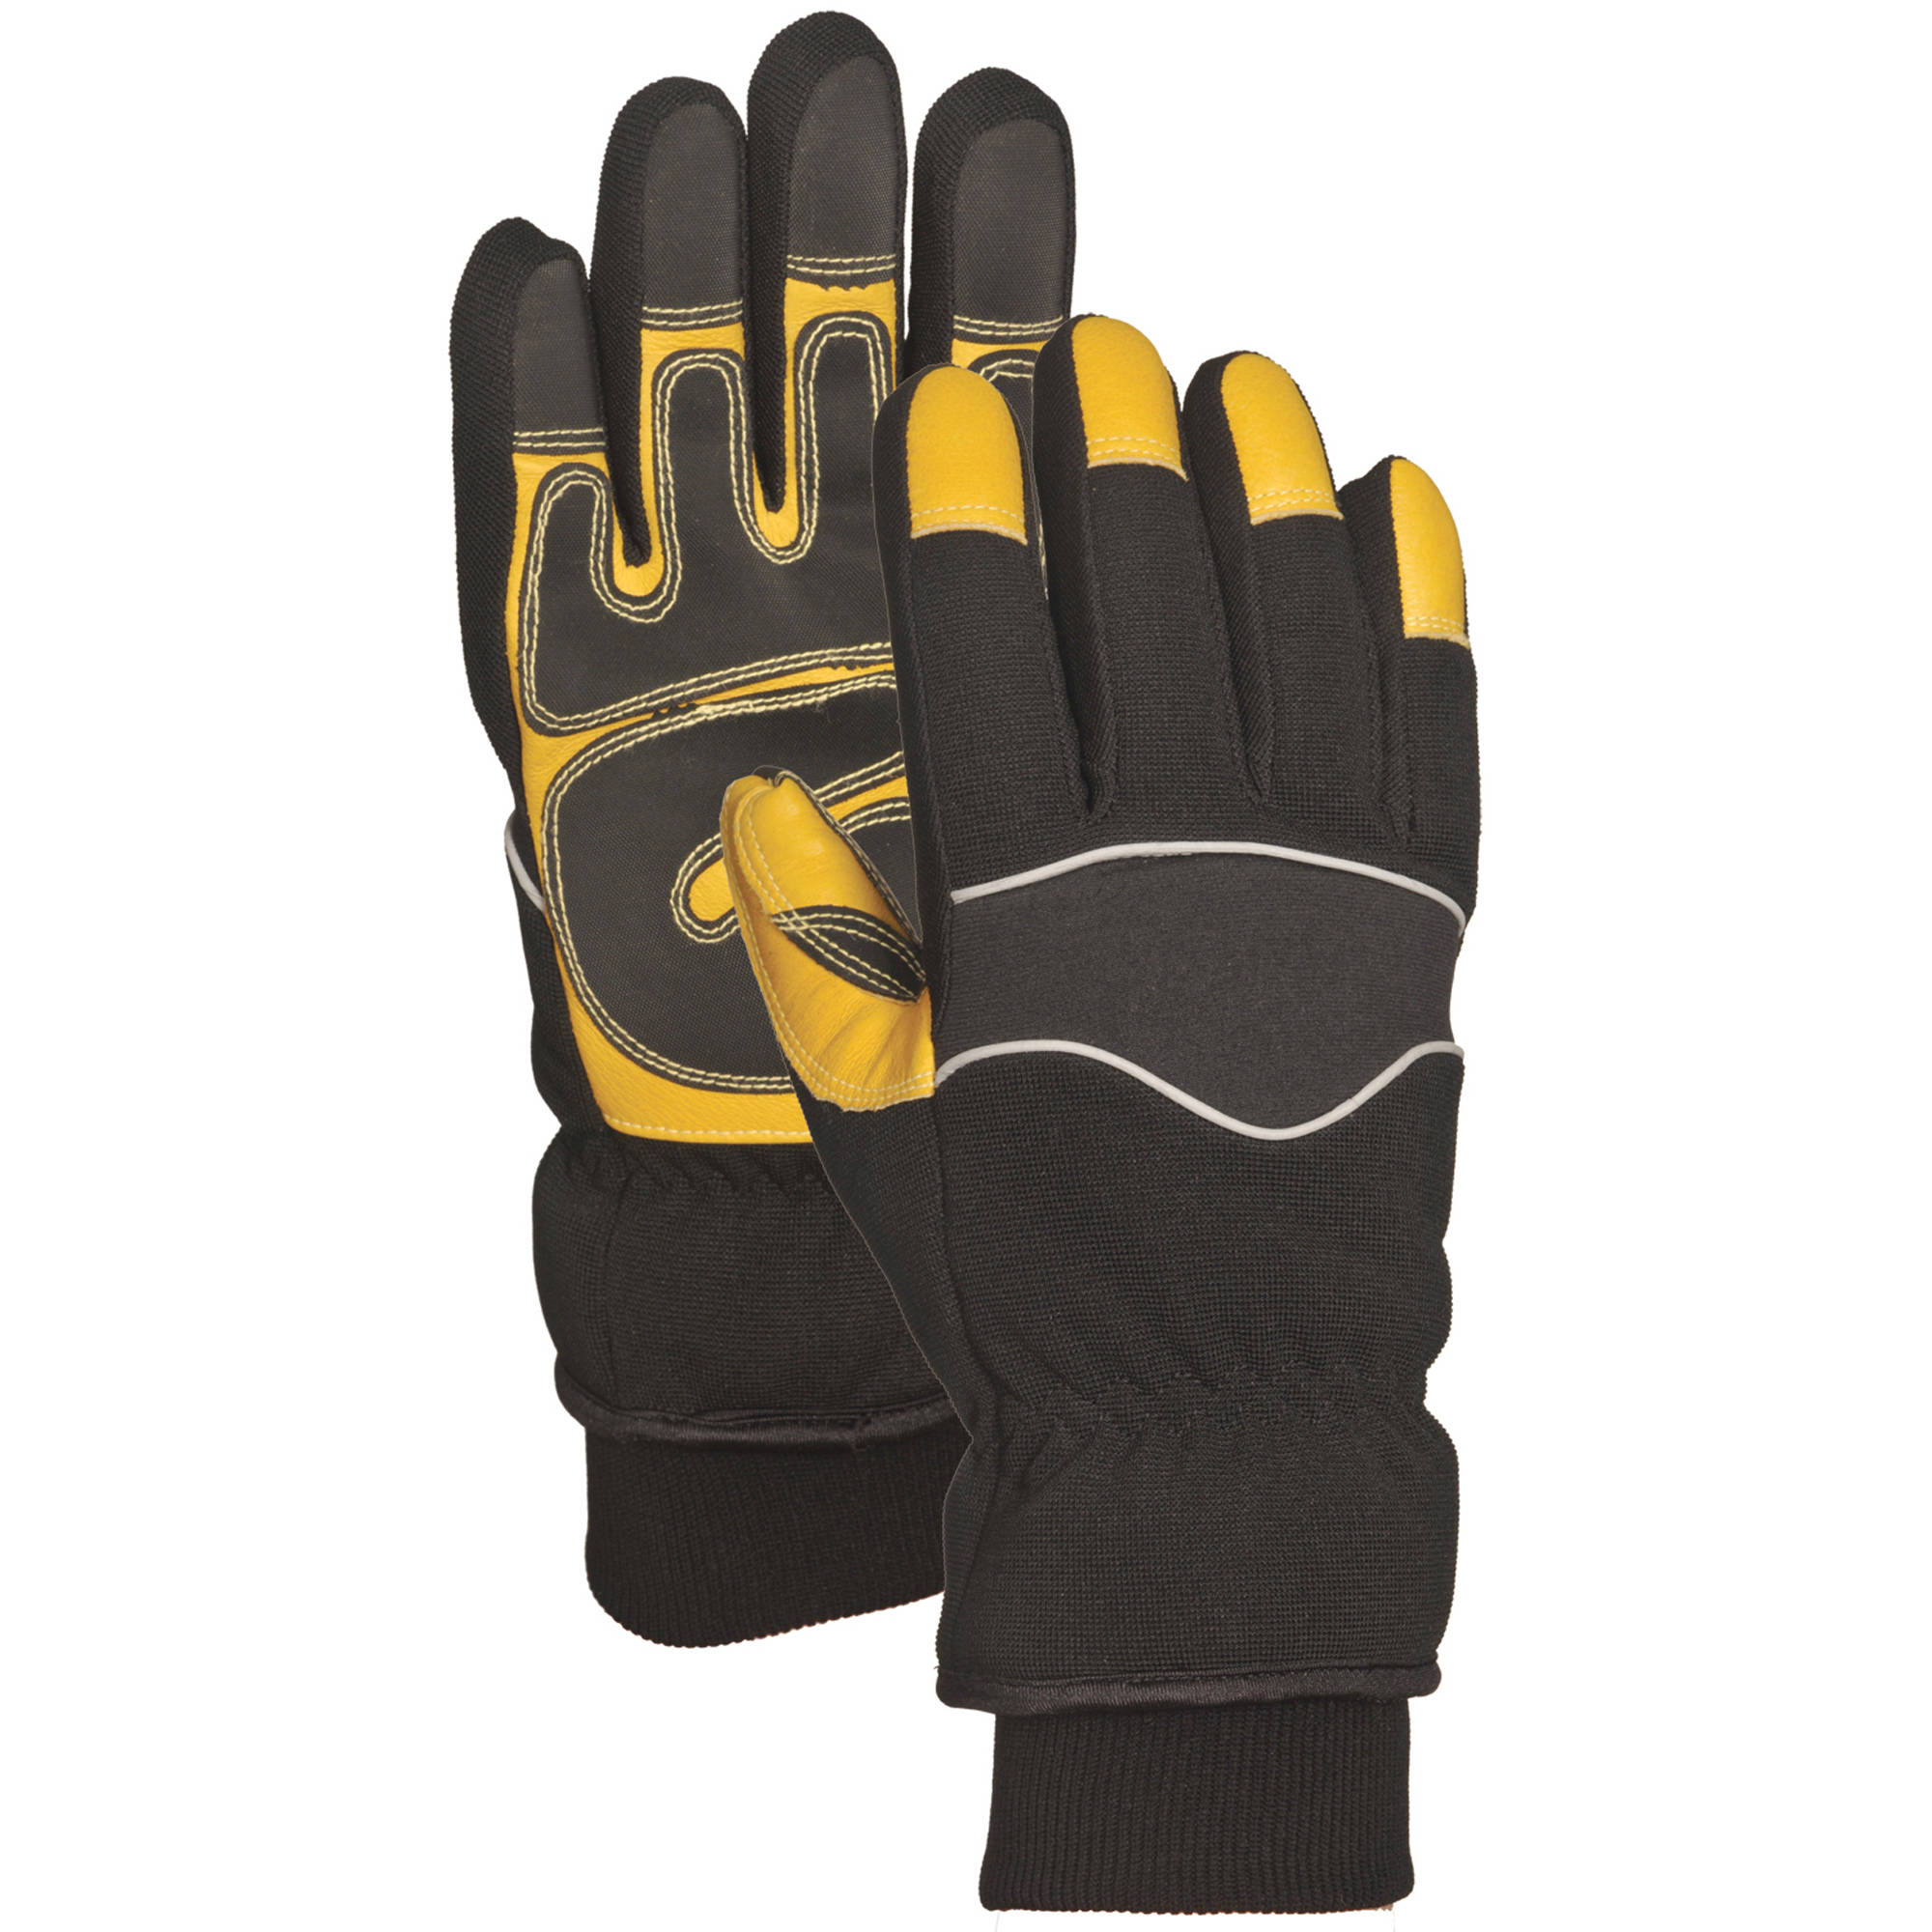 Bellingham Glove CRG23XXL 2X-Large Reinforced Leather Palm Insulated Winter Gloves